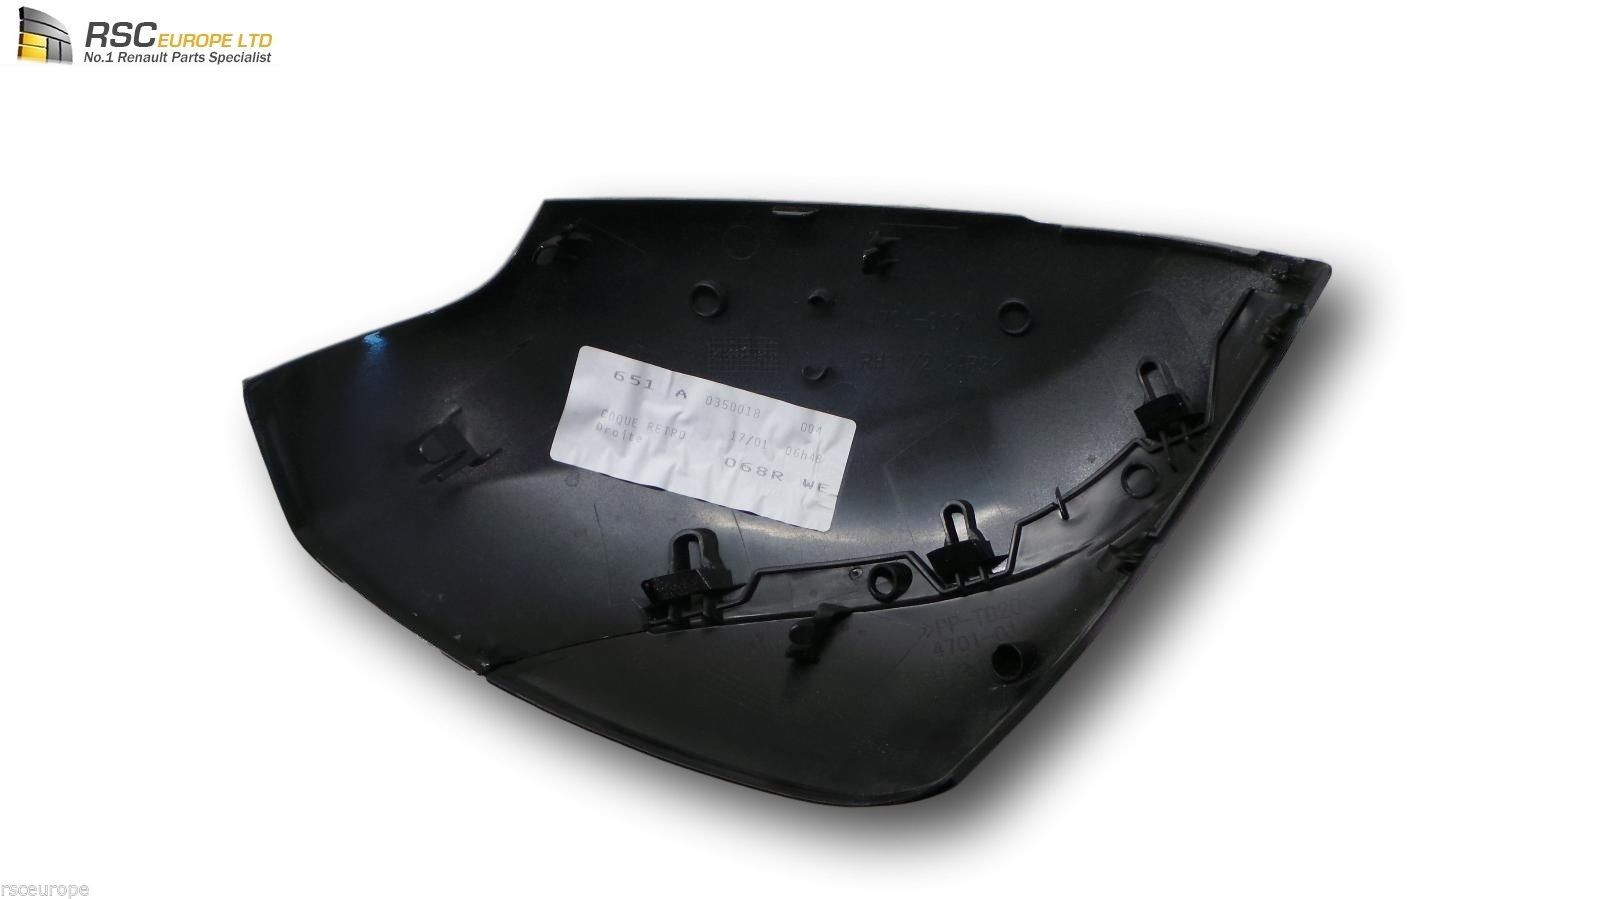 renault scenic 3 iii right mirror cover cap shell in black os 963748223r. Black Bedroom Furniture Sets. Home Design Ideas